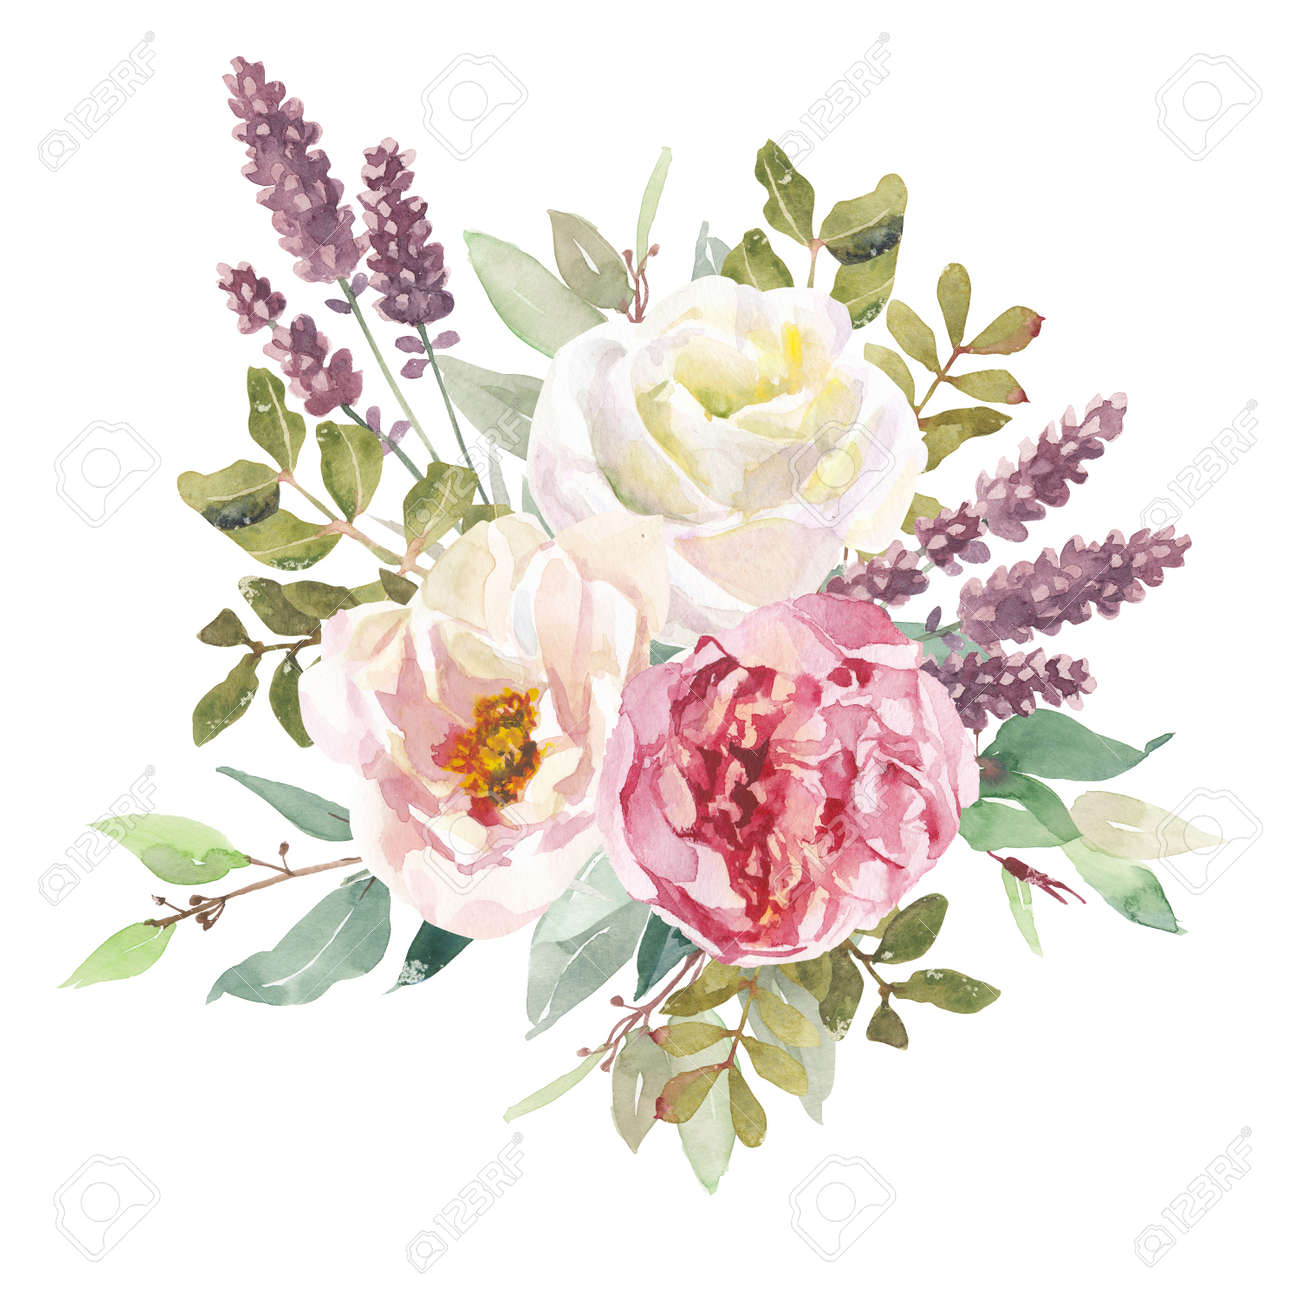 Watercolor flowers bouquet isolated on white background. Can be used as greeting card, invitation card for wedding, summer background, birthday and other holiday. Element for design - 149668451